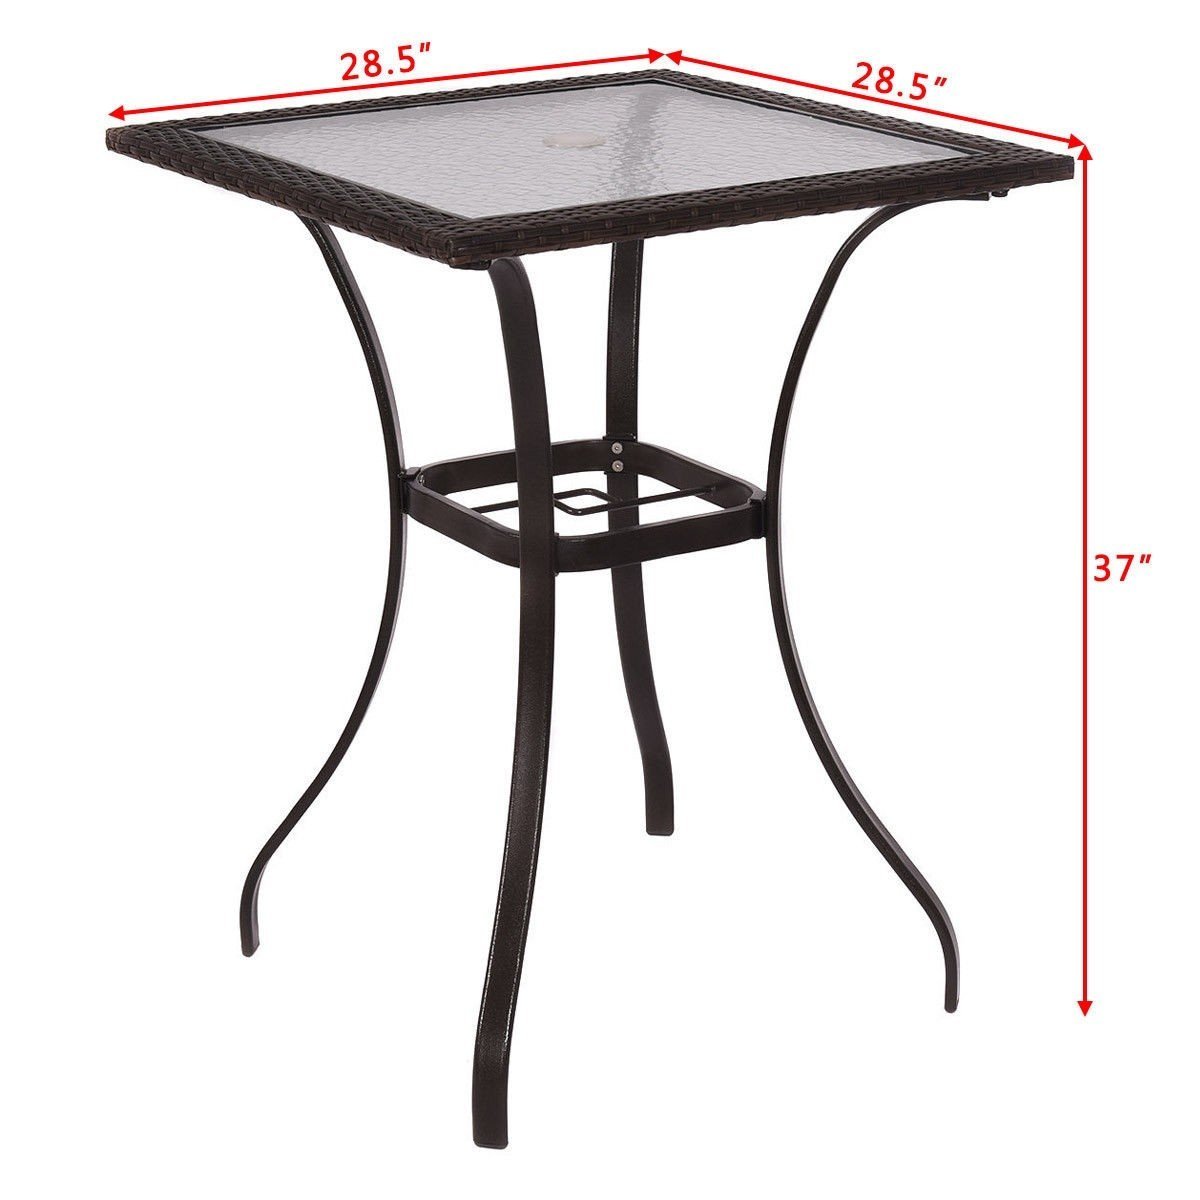 Amazon com hth store outdoor patio rattan square table with glass top coffee table modern table modern decor end table garden outdoor